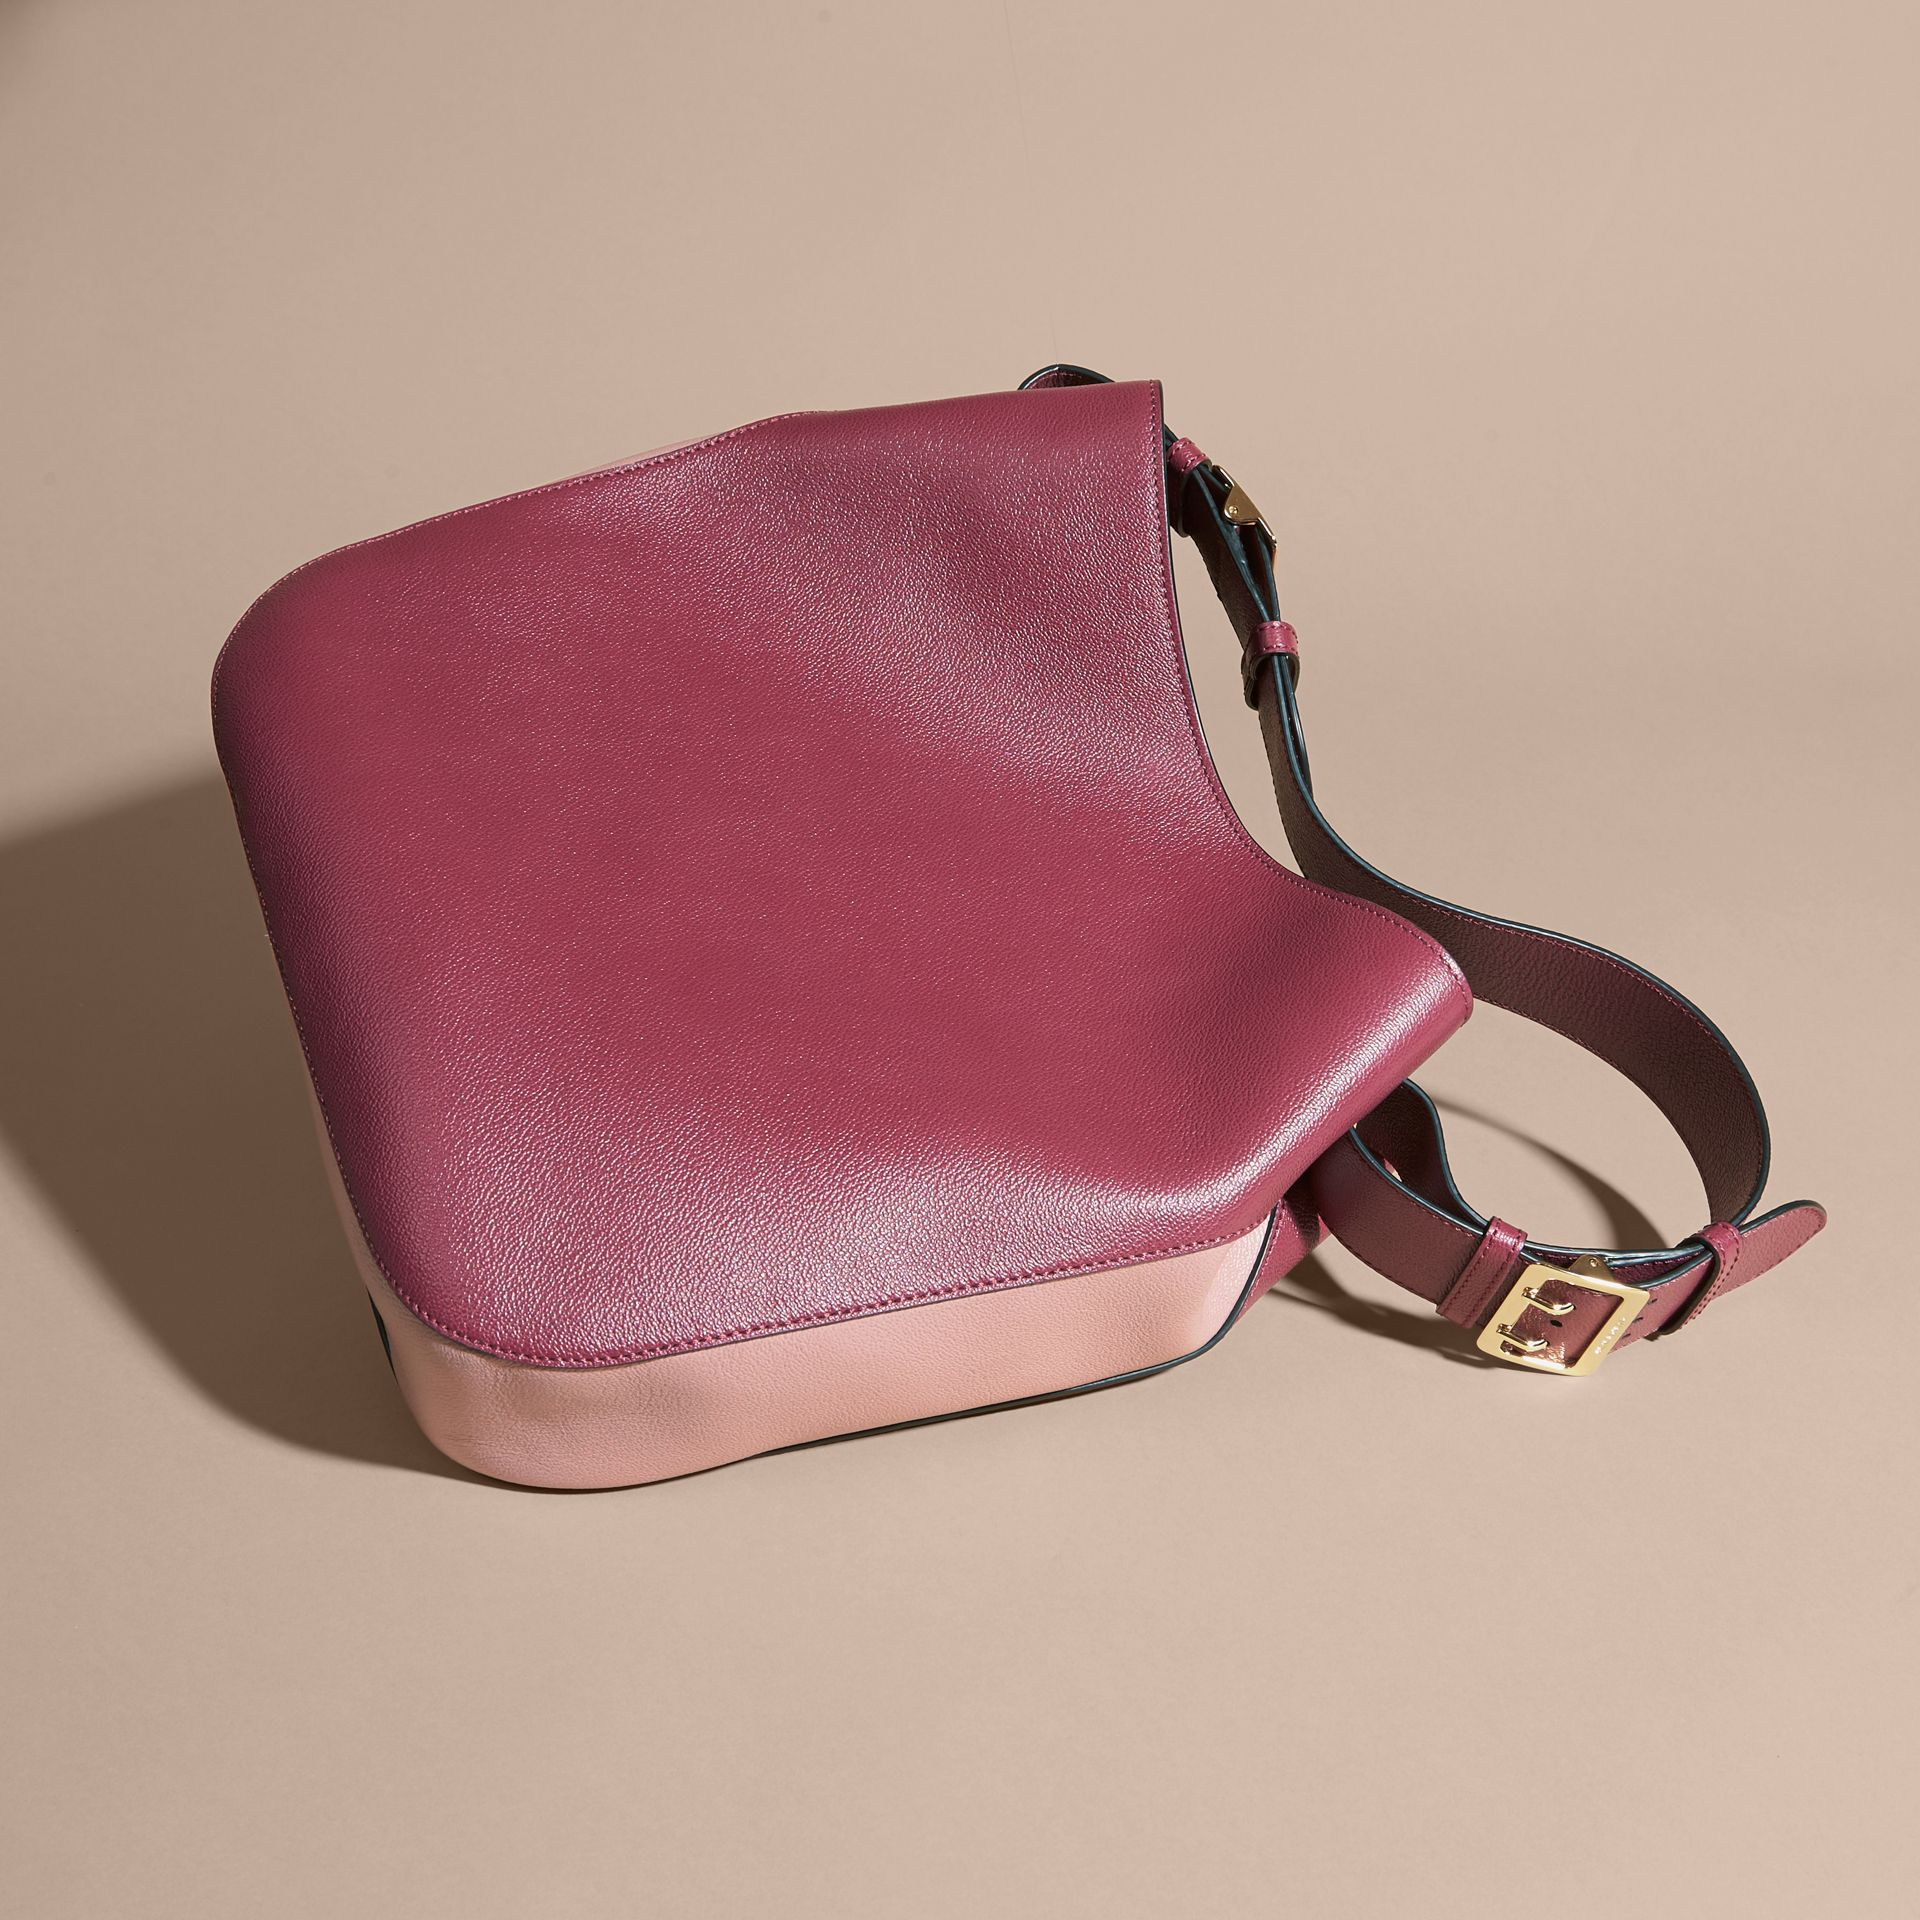 Textured Leather Shoulder Bag in Dark Plum/ Dusty Pink - gallery image 4